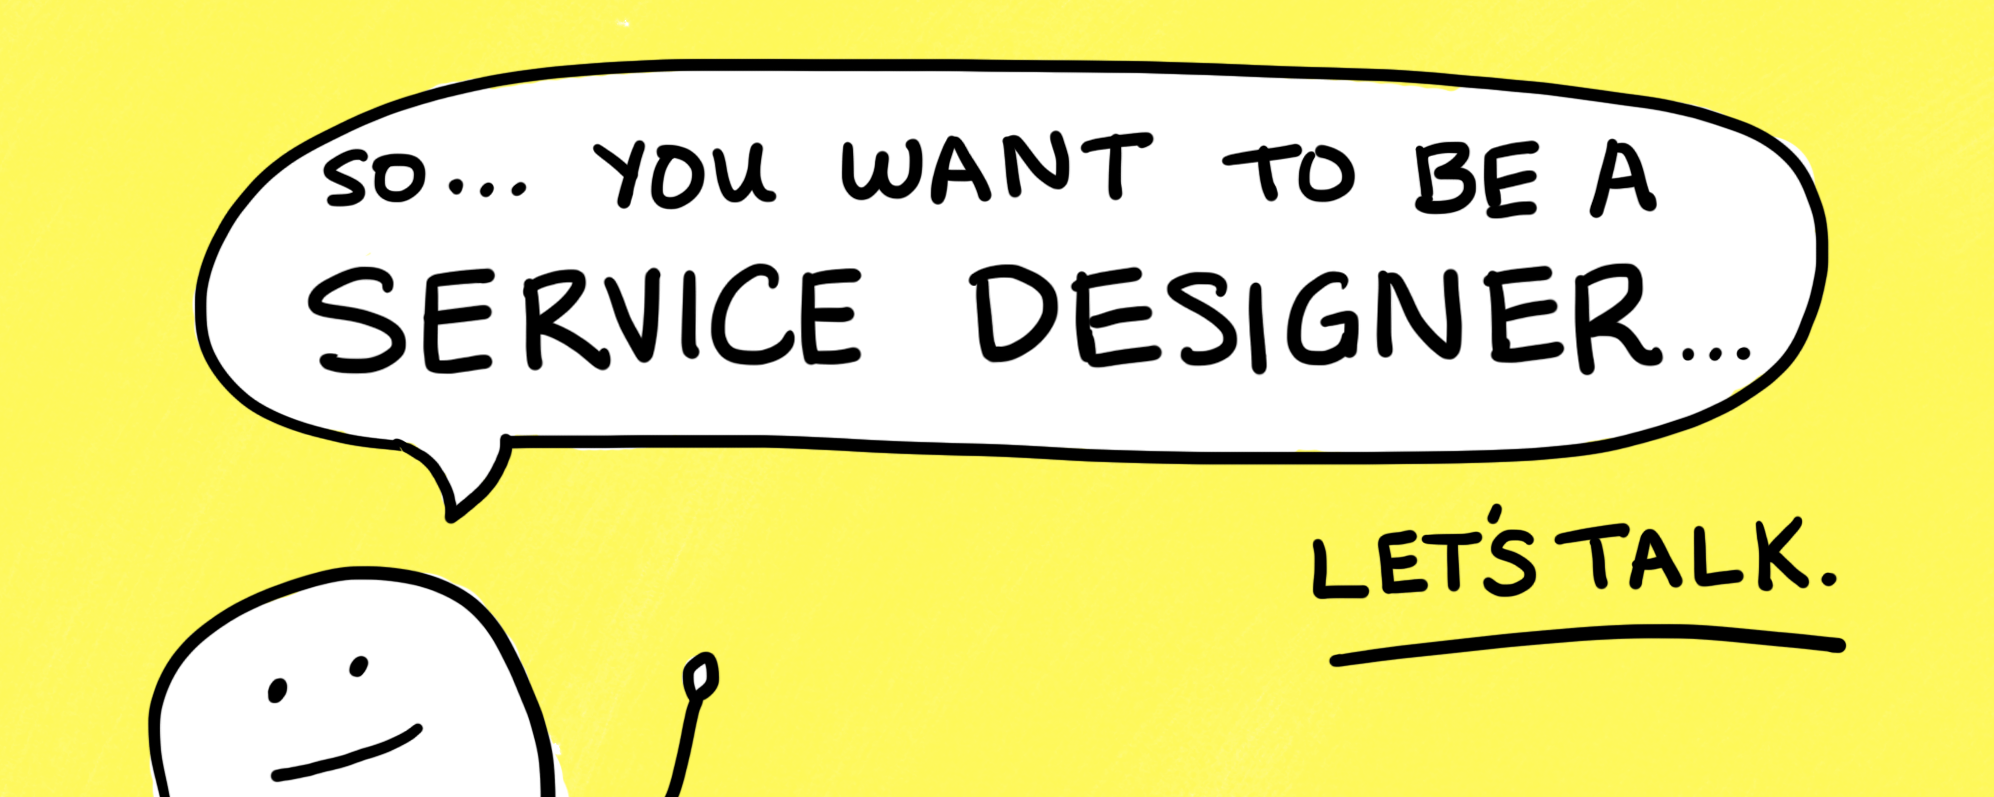 Hey, Service Design Job Seekers, We Need To Talk.